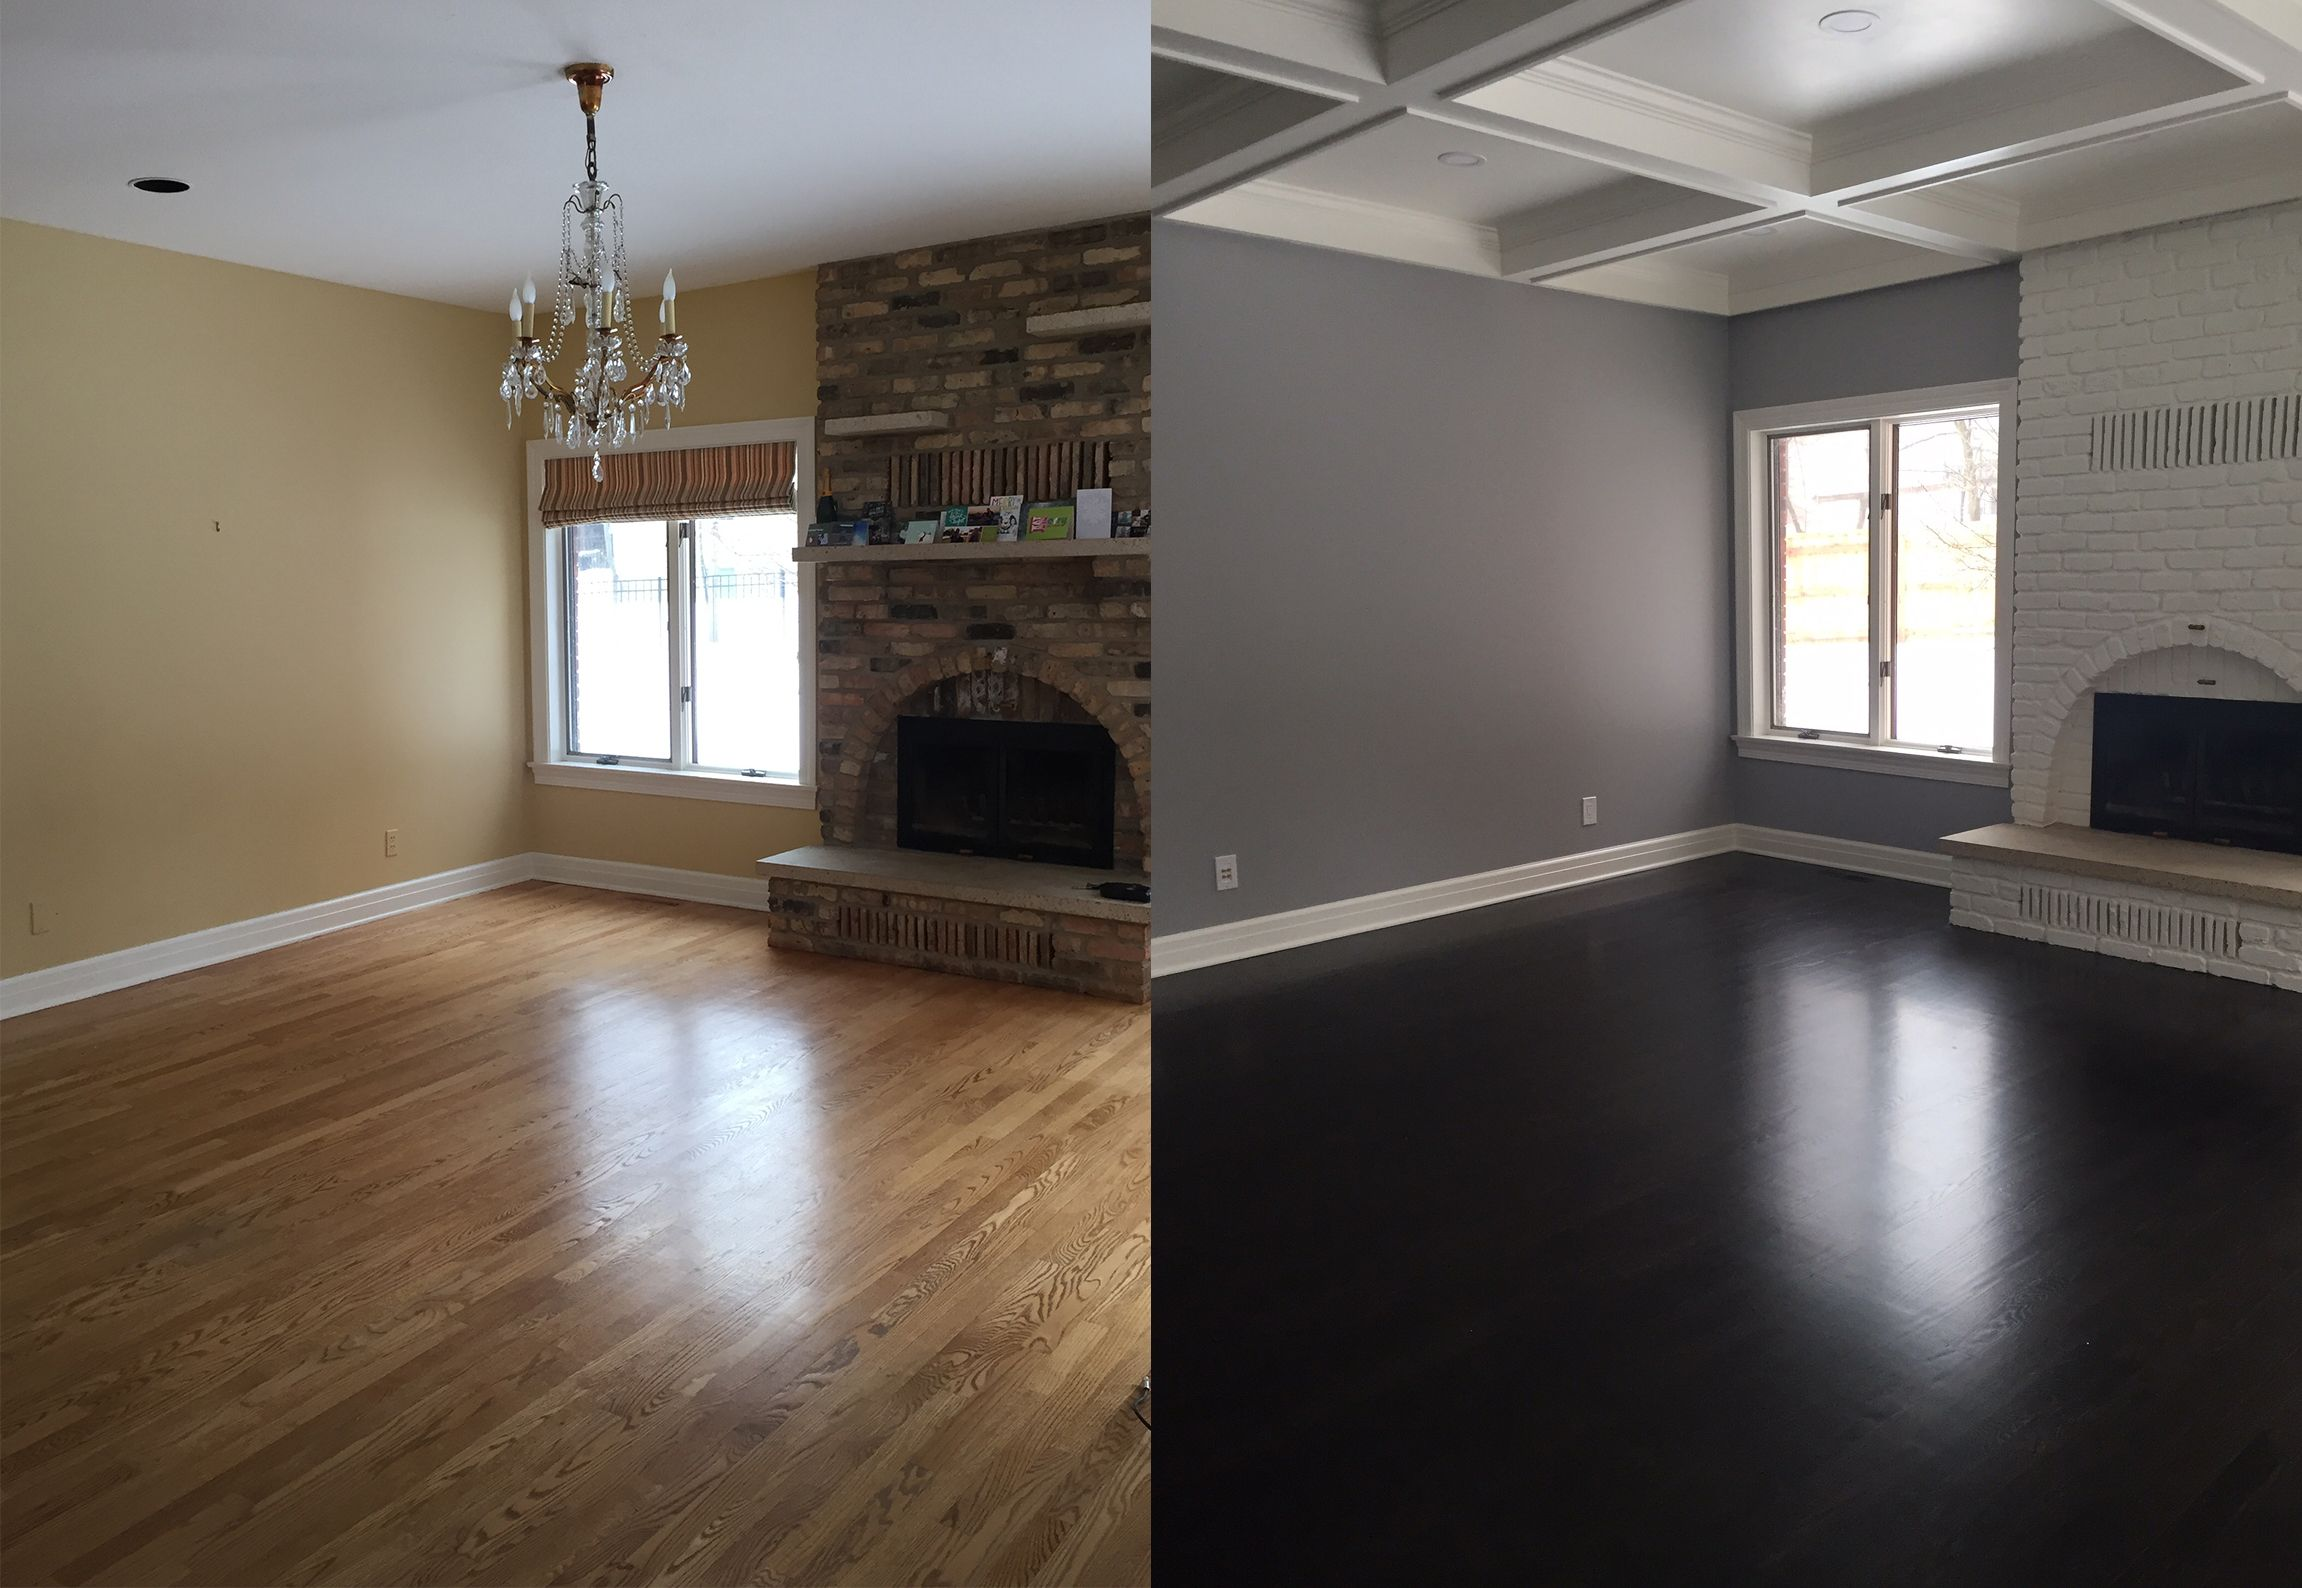 Another Before And After Set Of Photos Of Our Hearth Room From